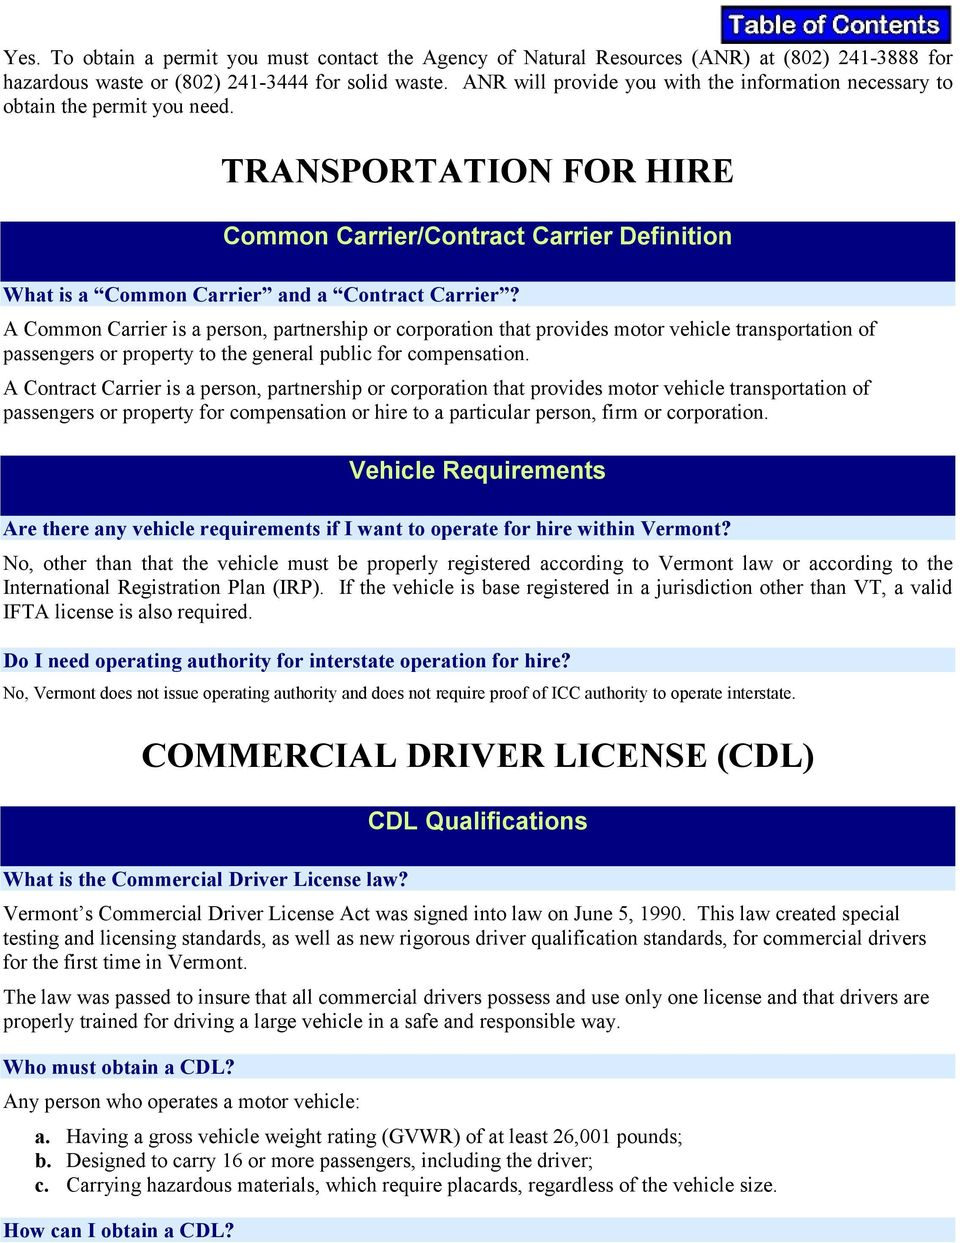 A Common Carrier is a person, partnership or corporation that provides motor vehicle transportation of passengers or property to the general public for compensation.